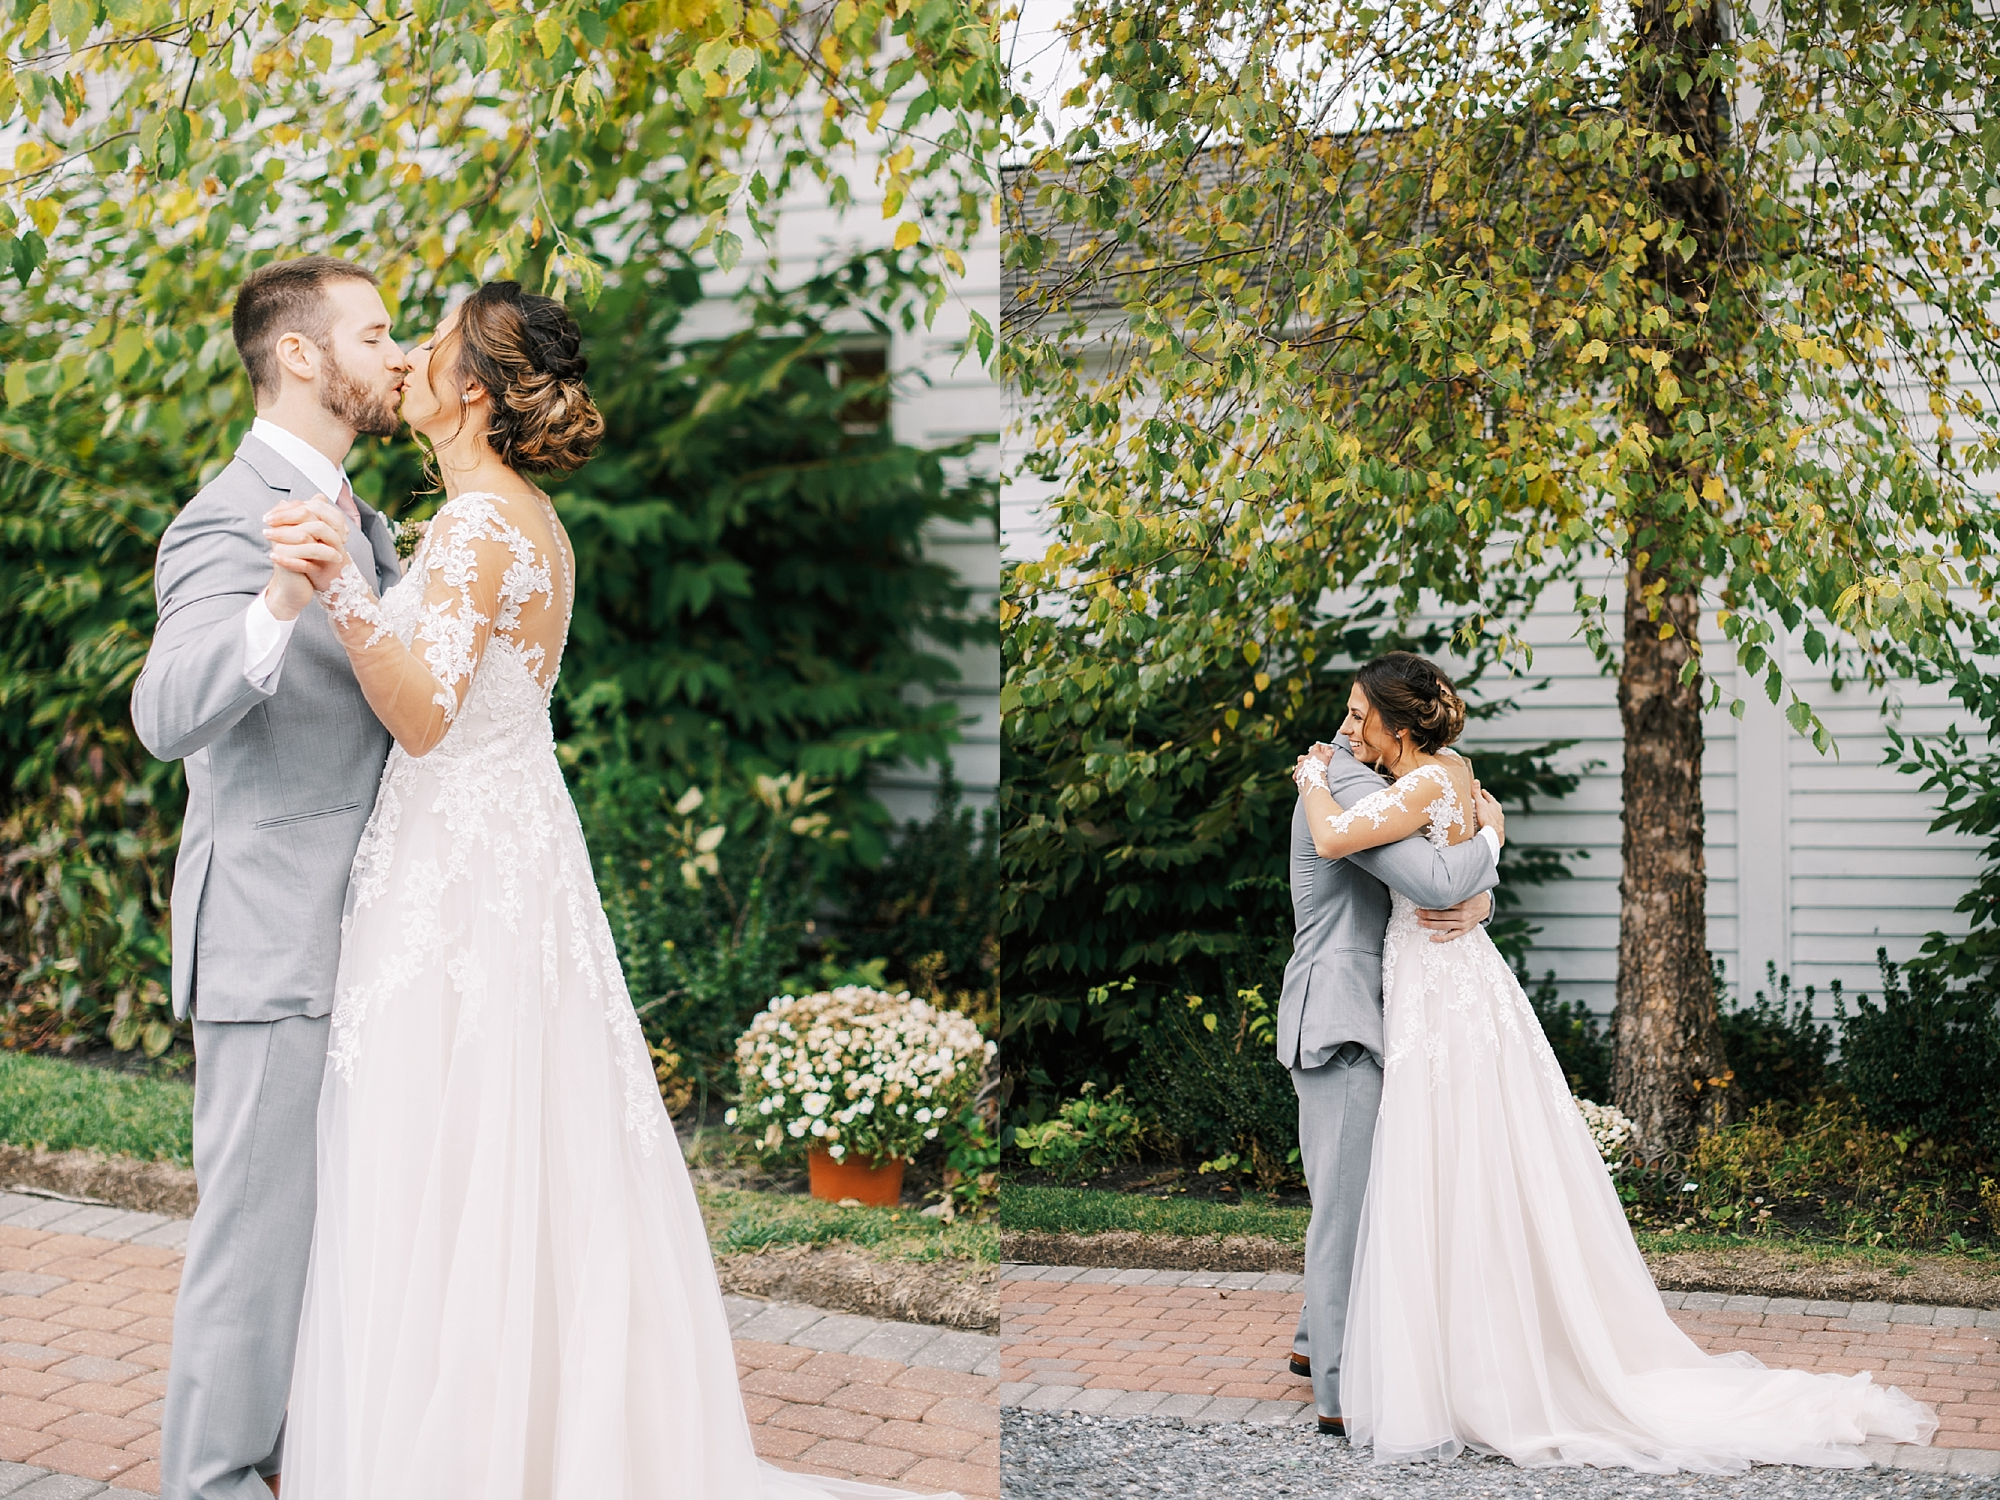 Sweet Garden Wedding Photography Abbie Holmes Estate in Cape May NJ by Magdalena Studios 0024